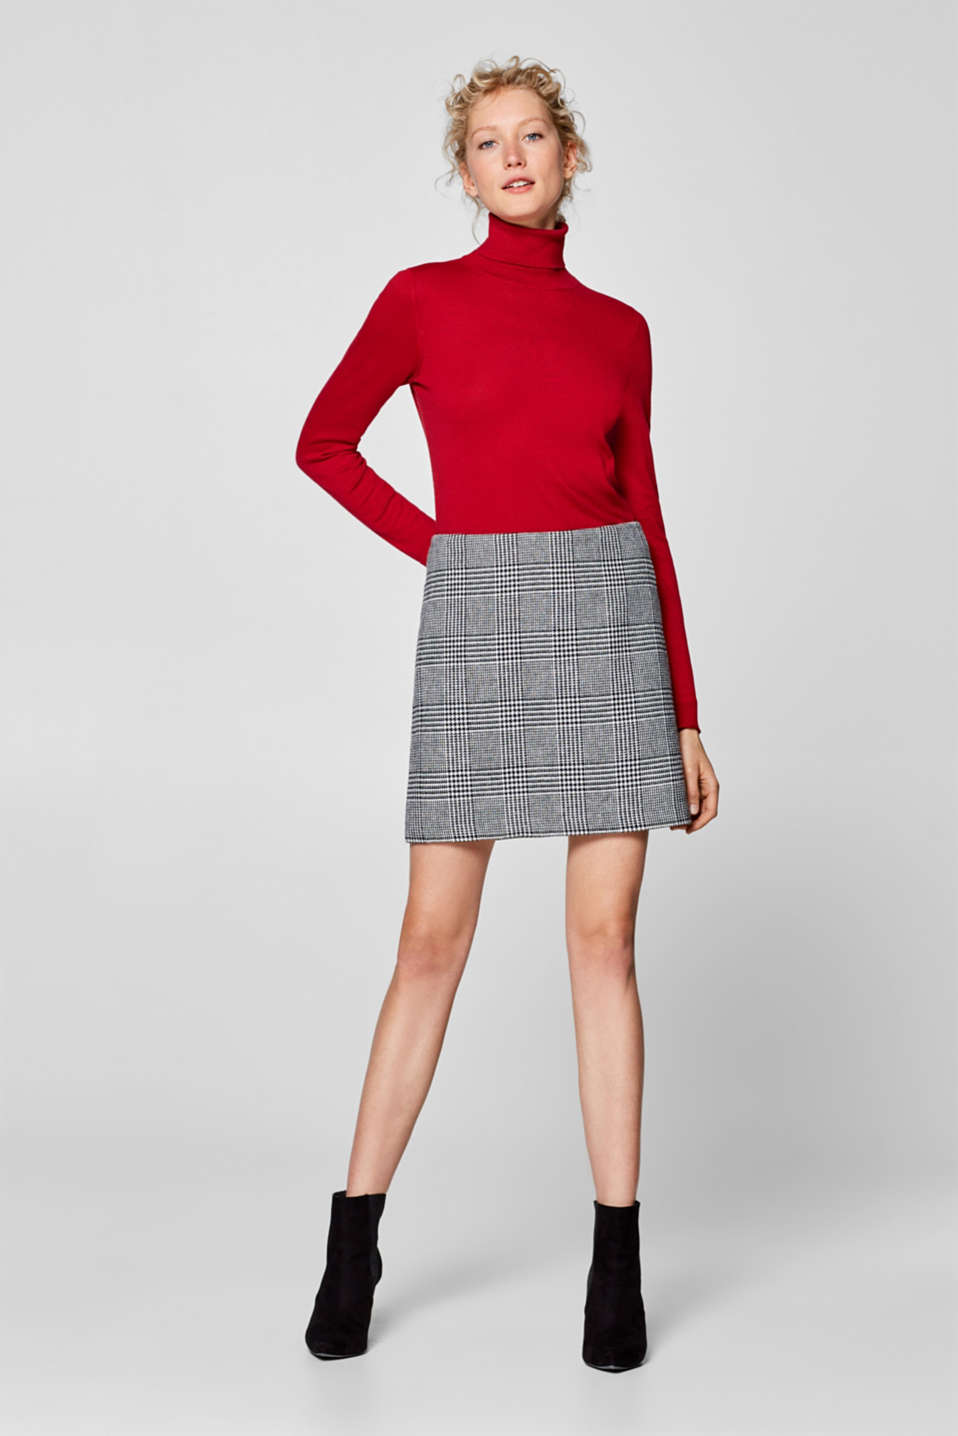 Esprit - Velvety stretch skirt, plain/houndstooth